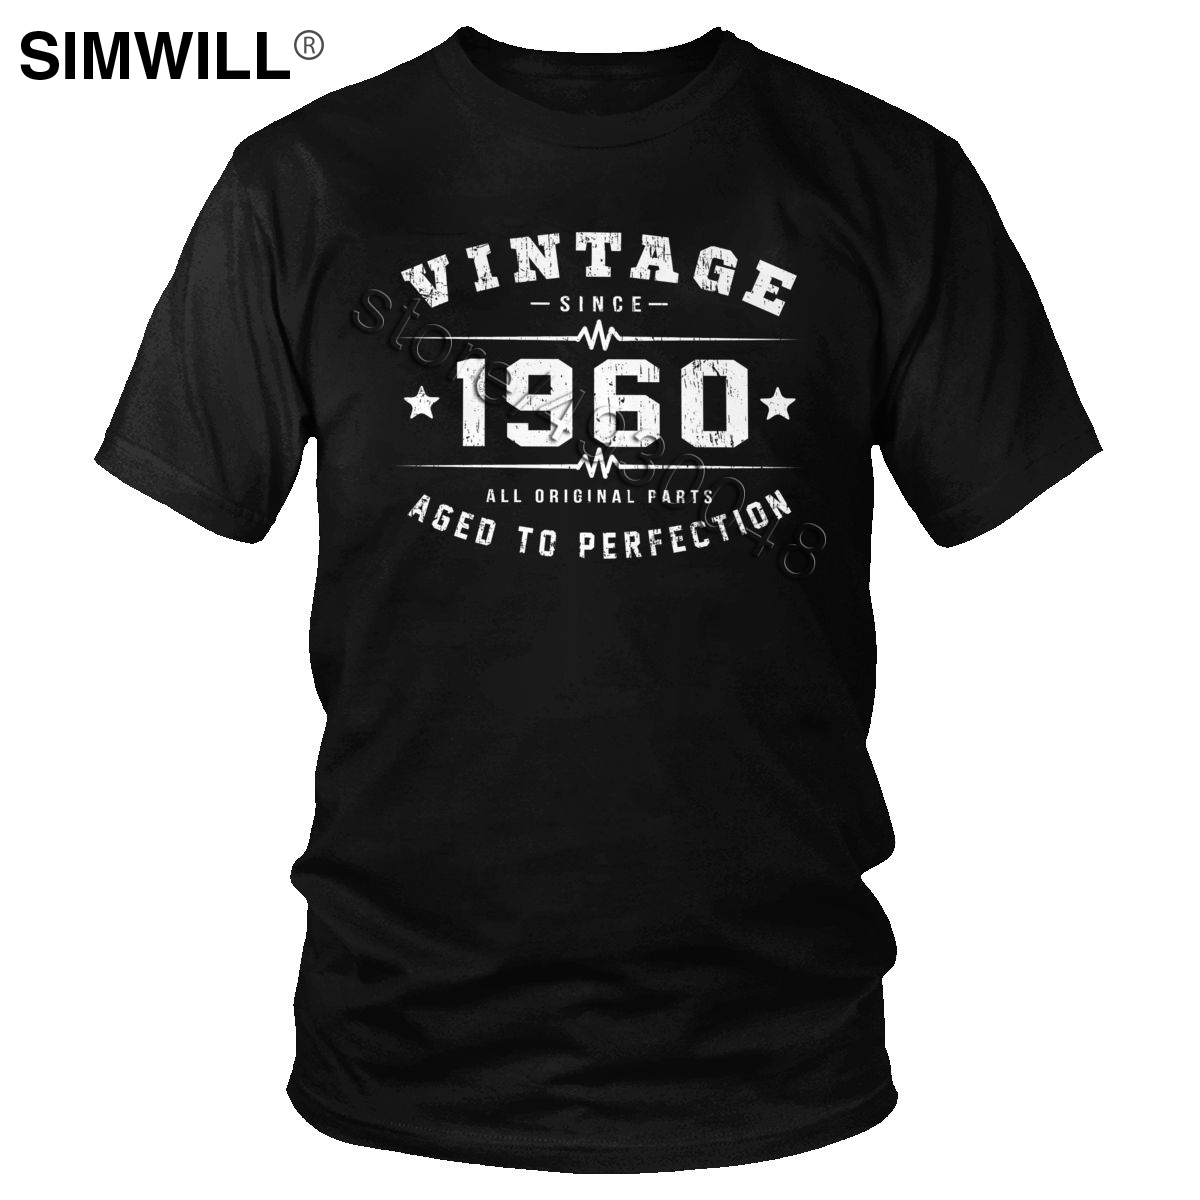 Vintage 1960 T Shirt Men Cotton 60 Years Old Tshirt Aged To Perfection 60th Birthday Tee Short Sleeves Round Neck T-Shirt Gift